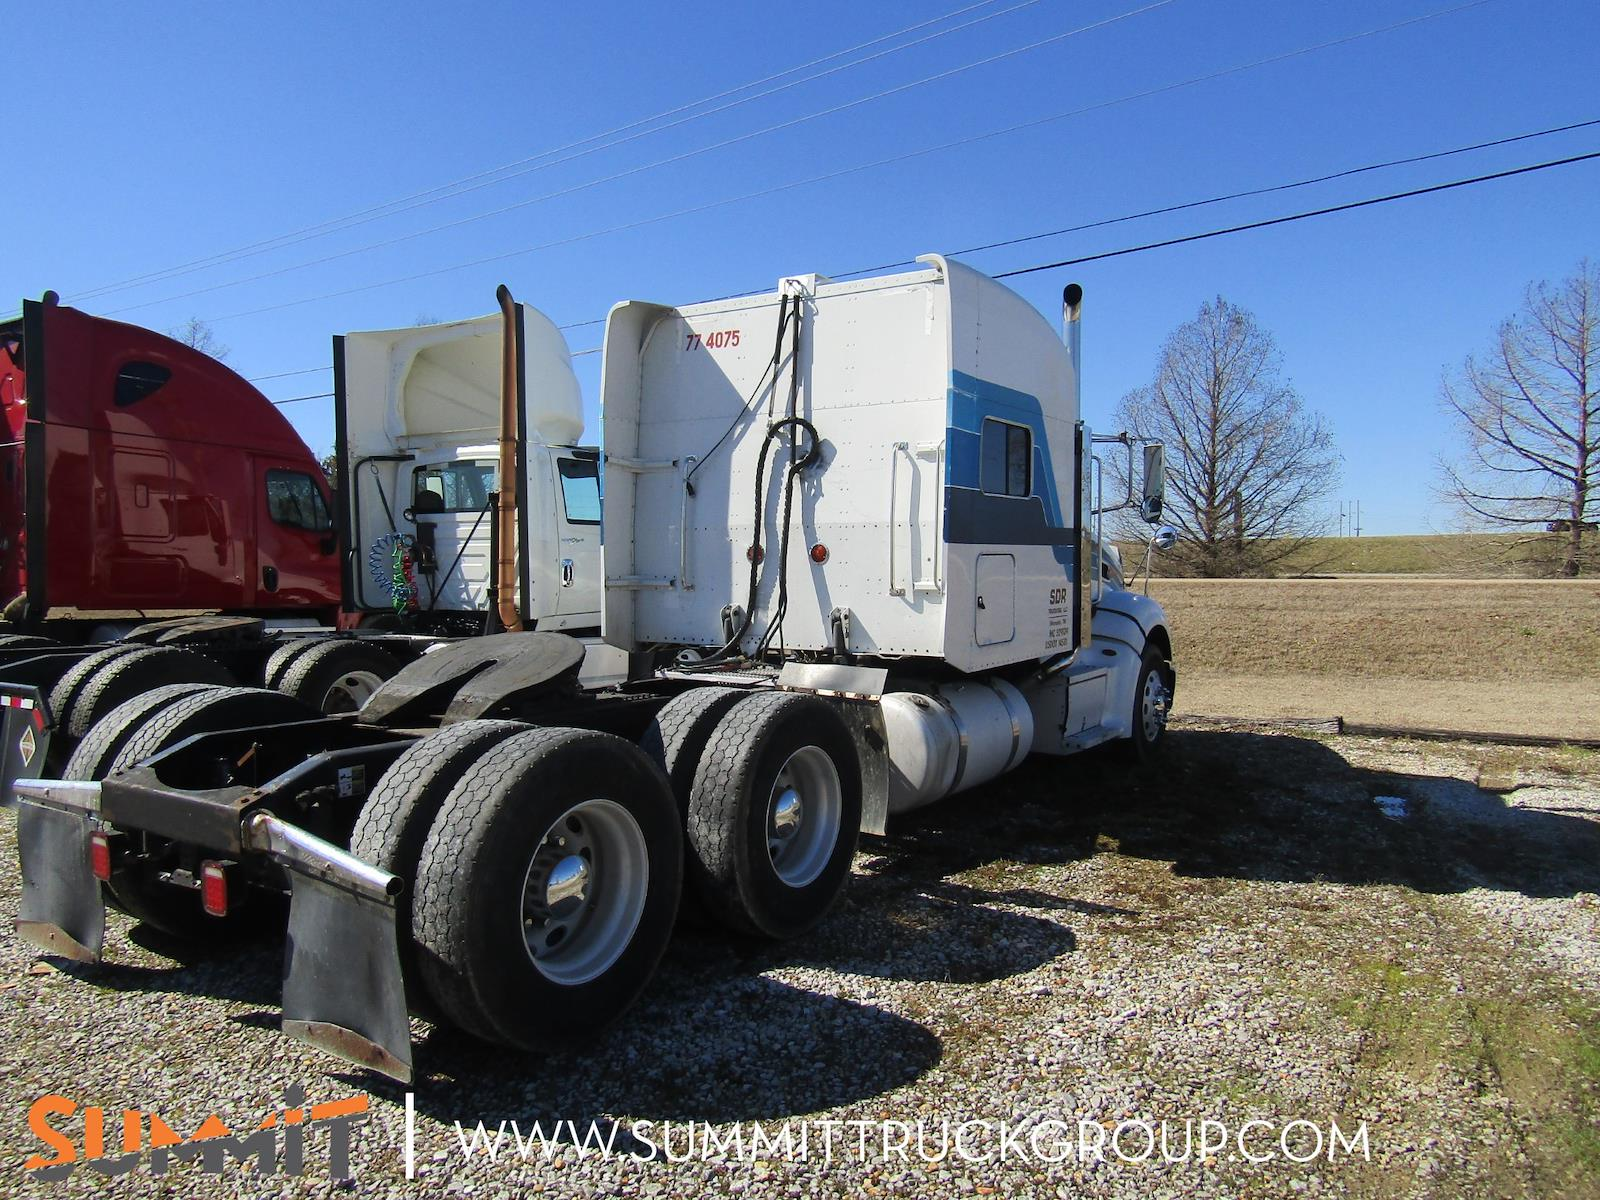 2007 Peterbilt 386 Sleeper Cab 6x4, Tractor #165T210343 - photo 1